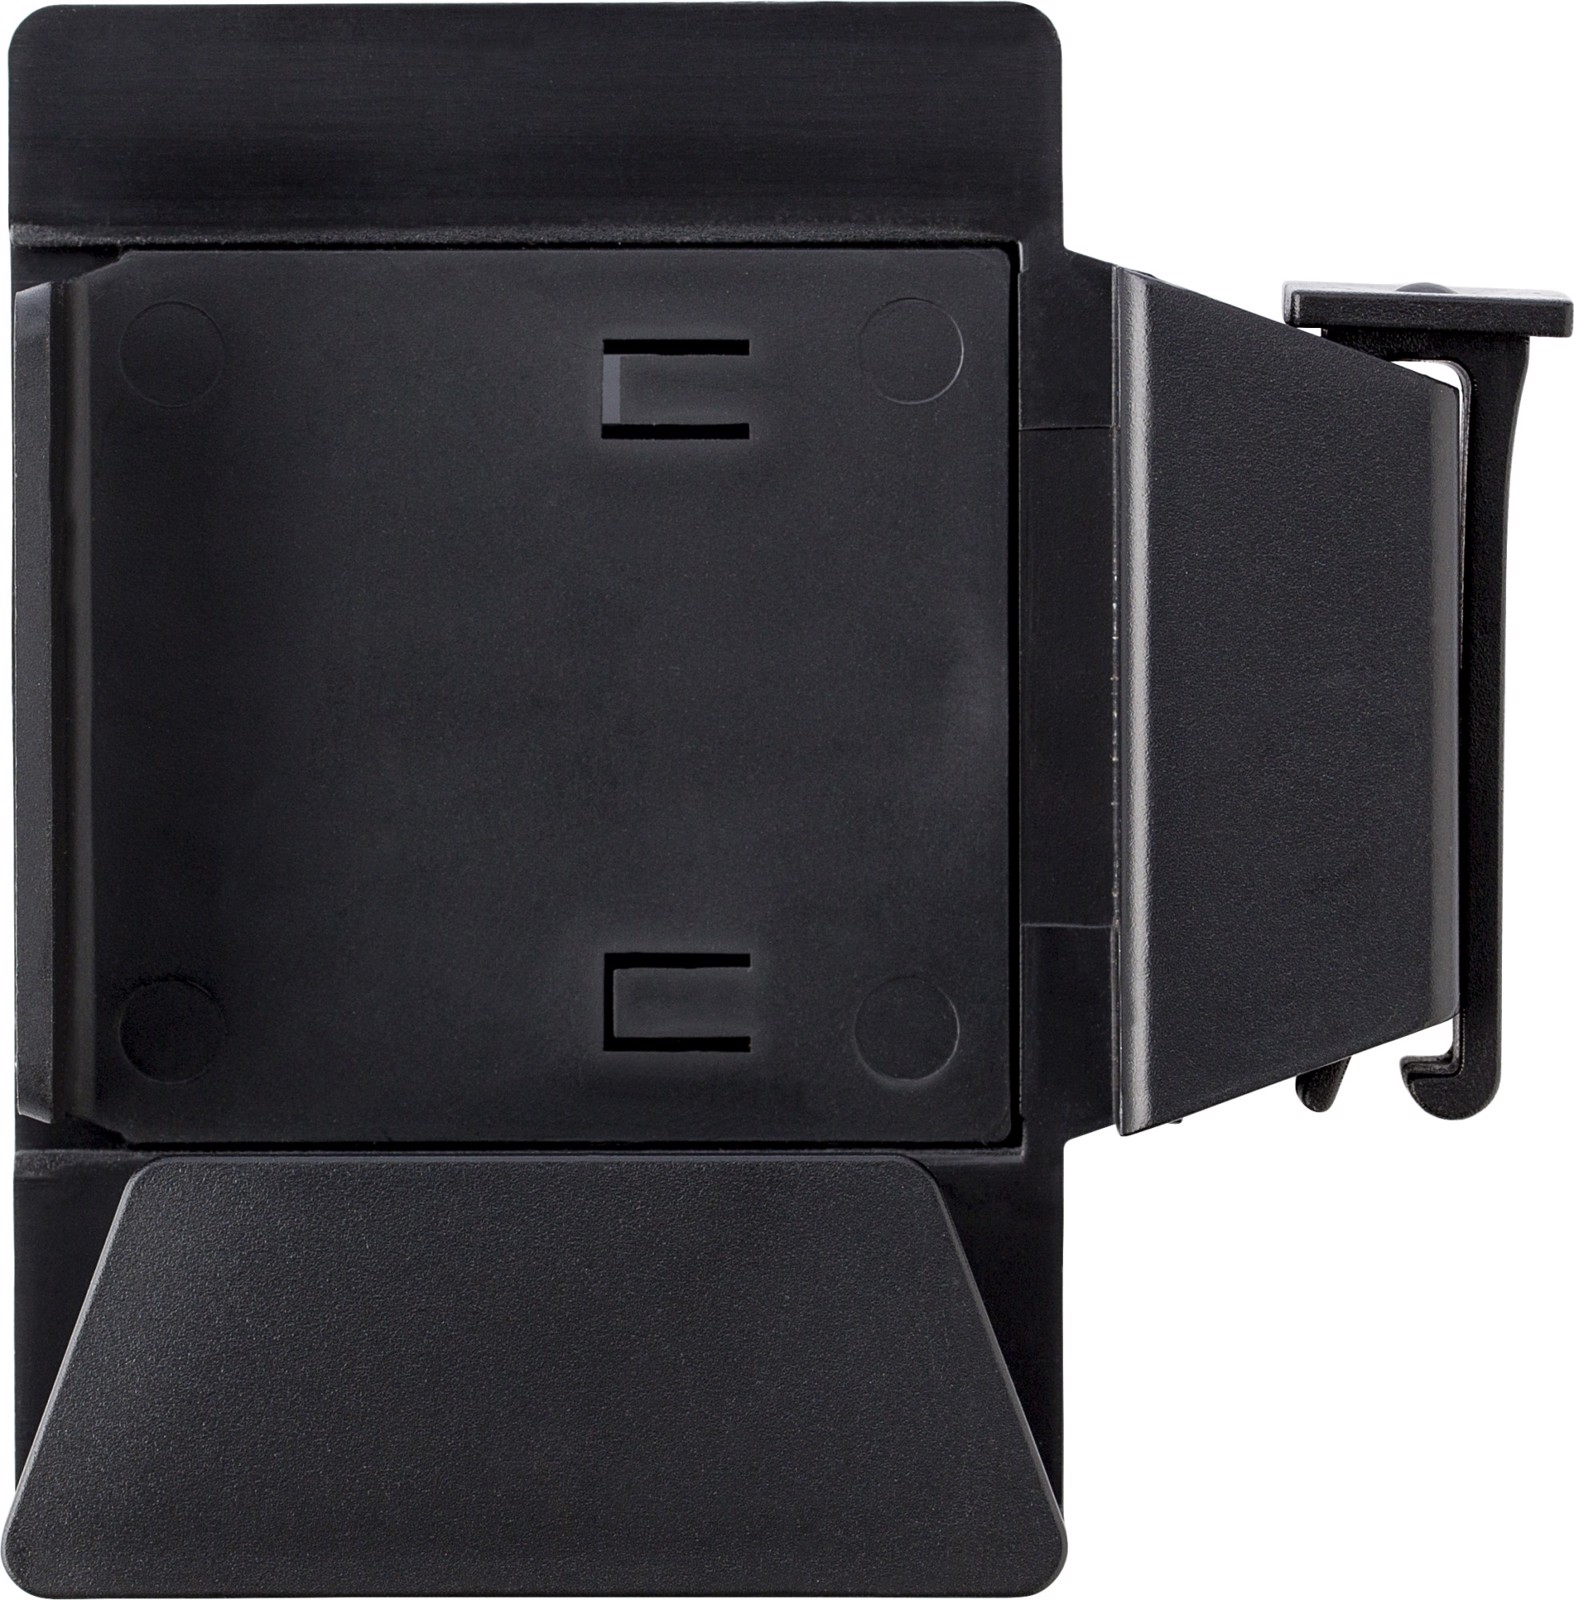 ABS mobile phone holder